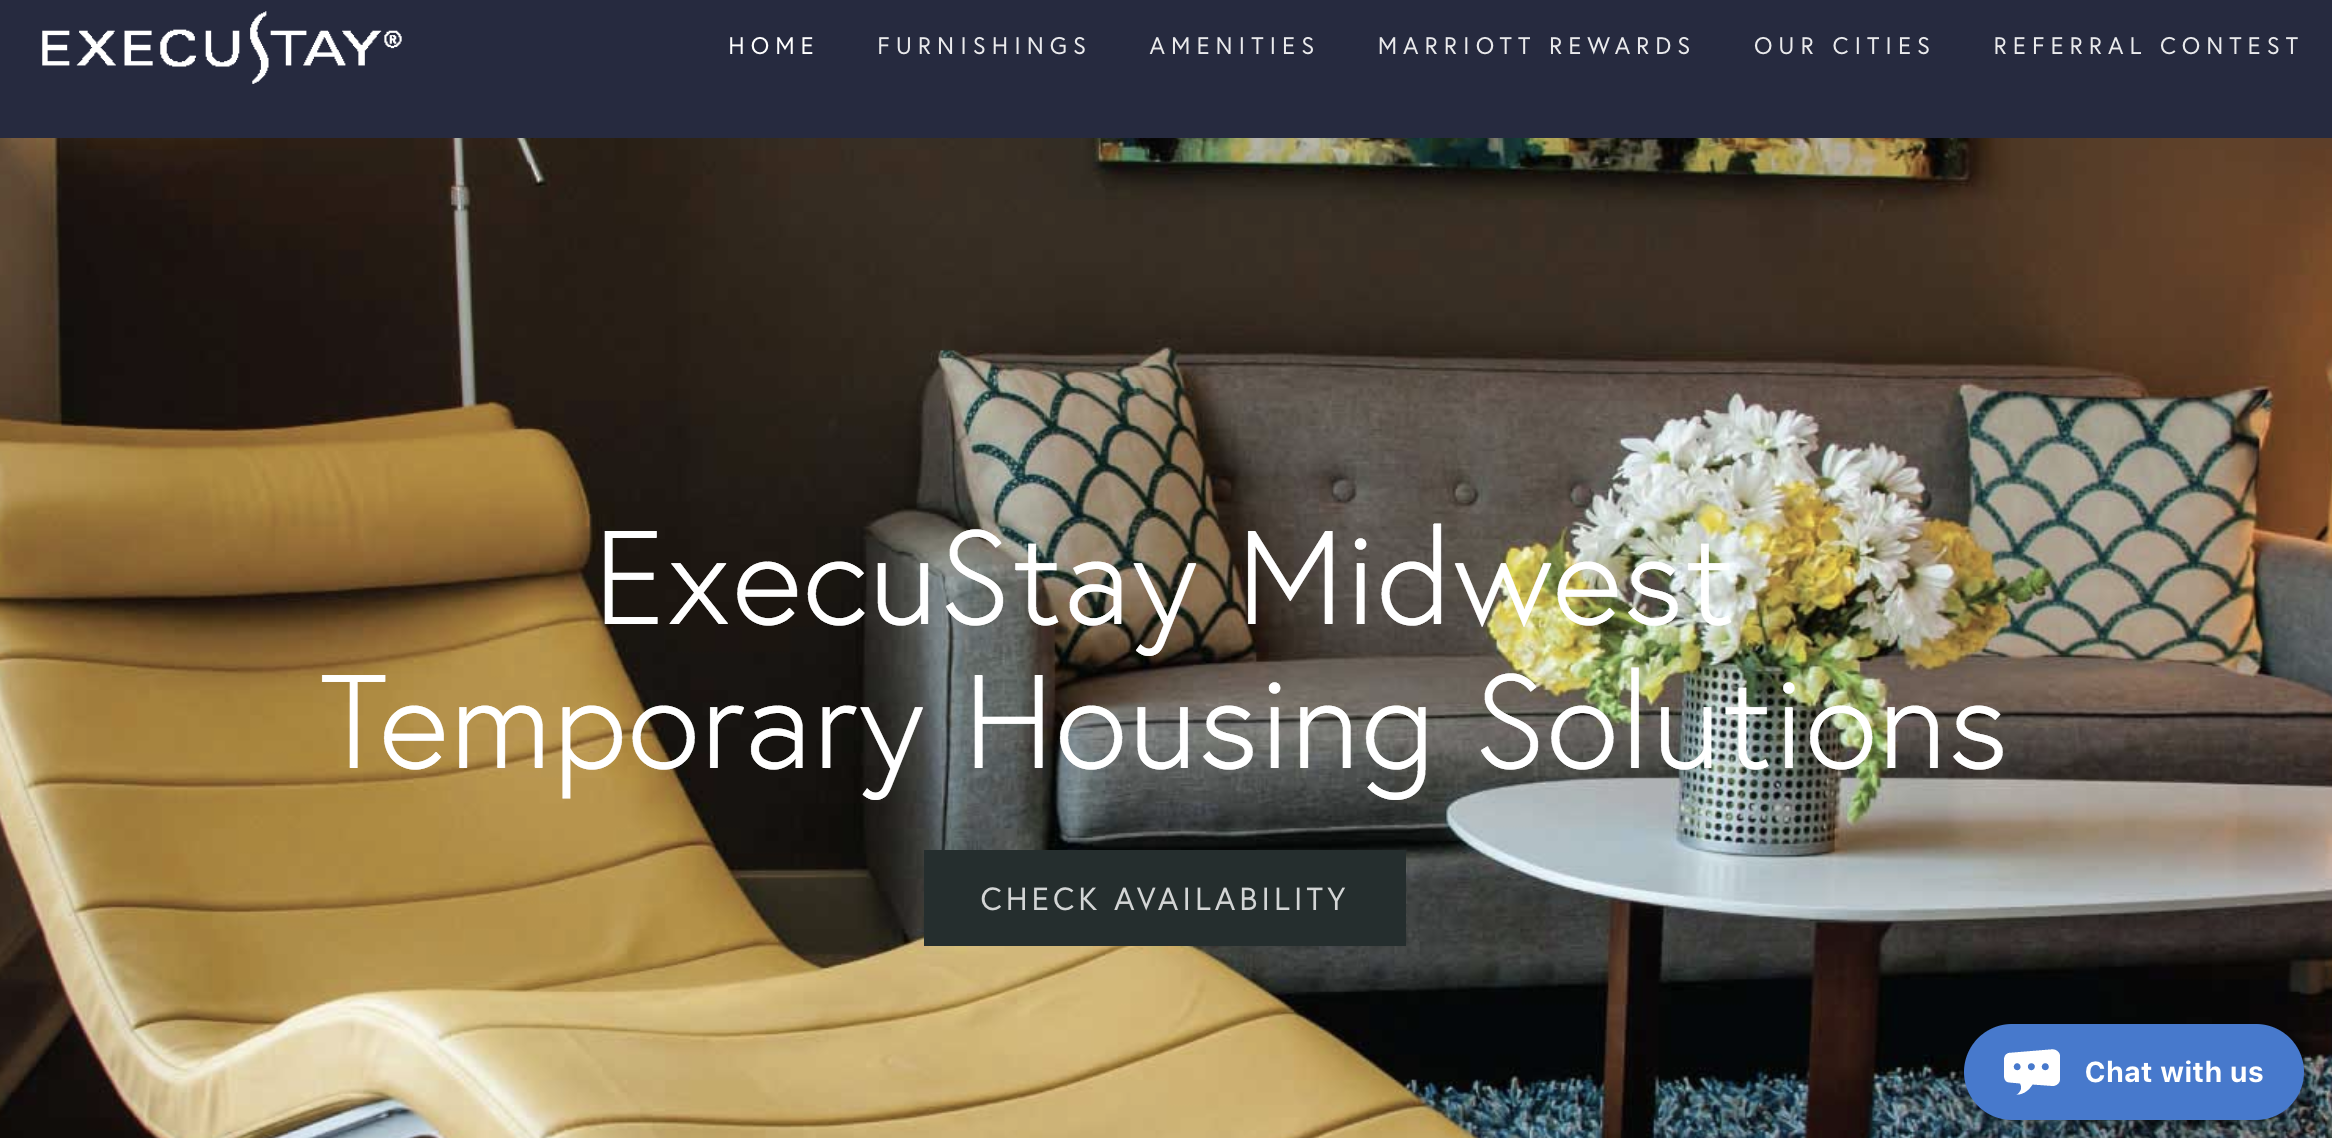 Home page for ExecuStay Midwest, one of Transition Group's companies, with the Olark chatbox in the lower right.